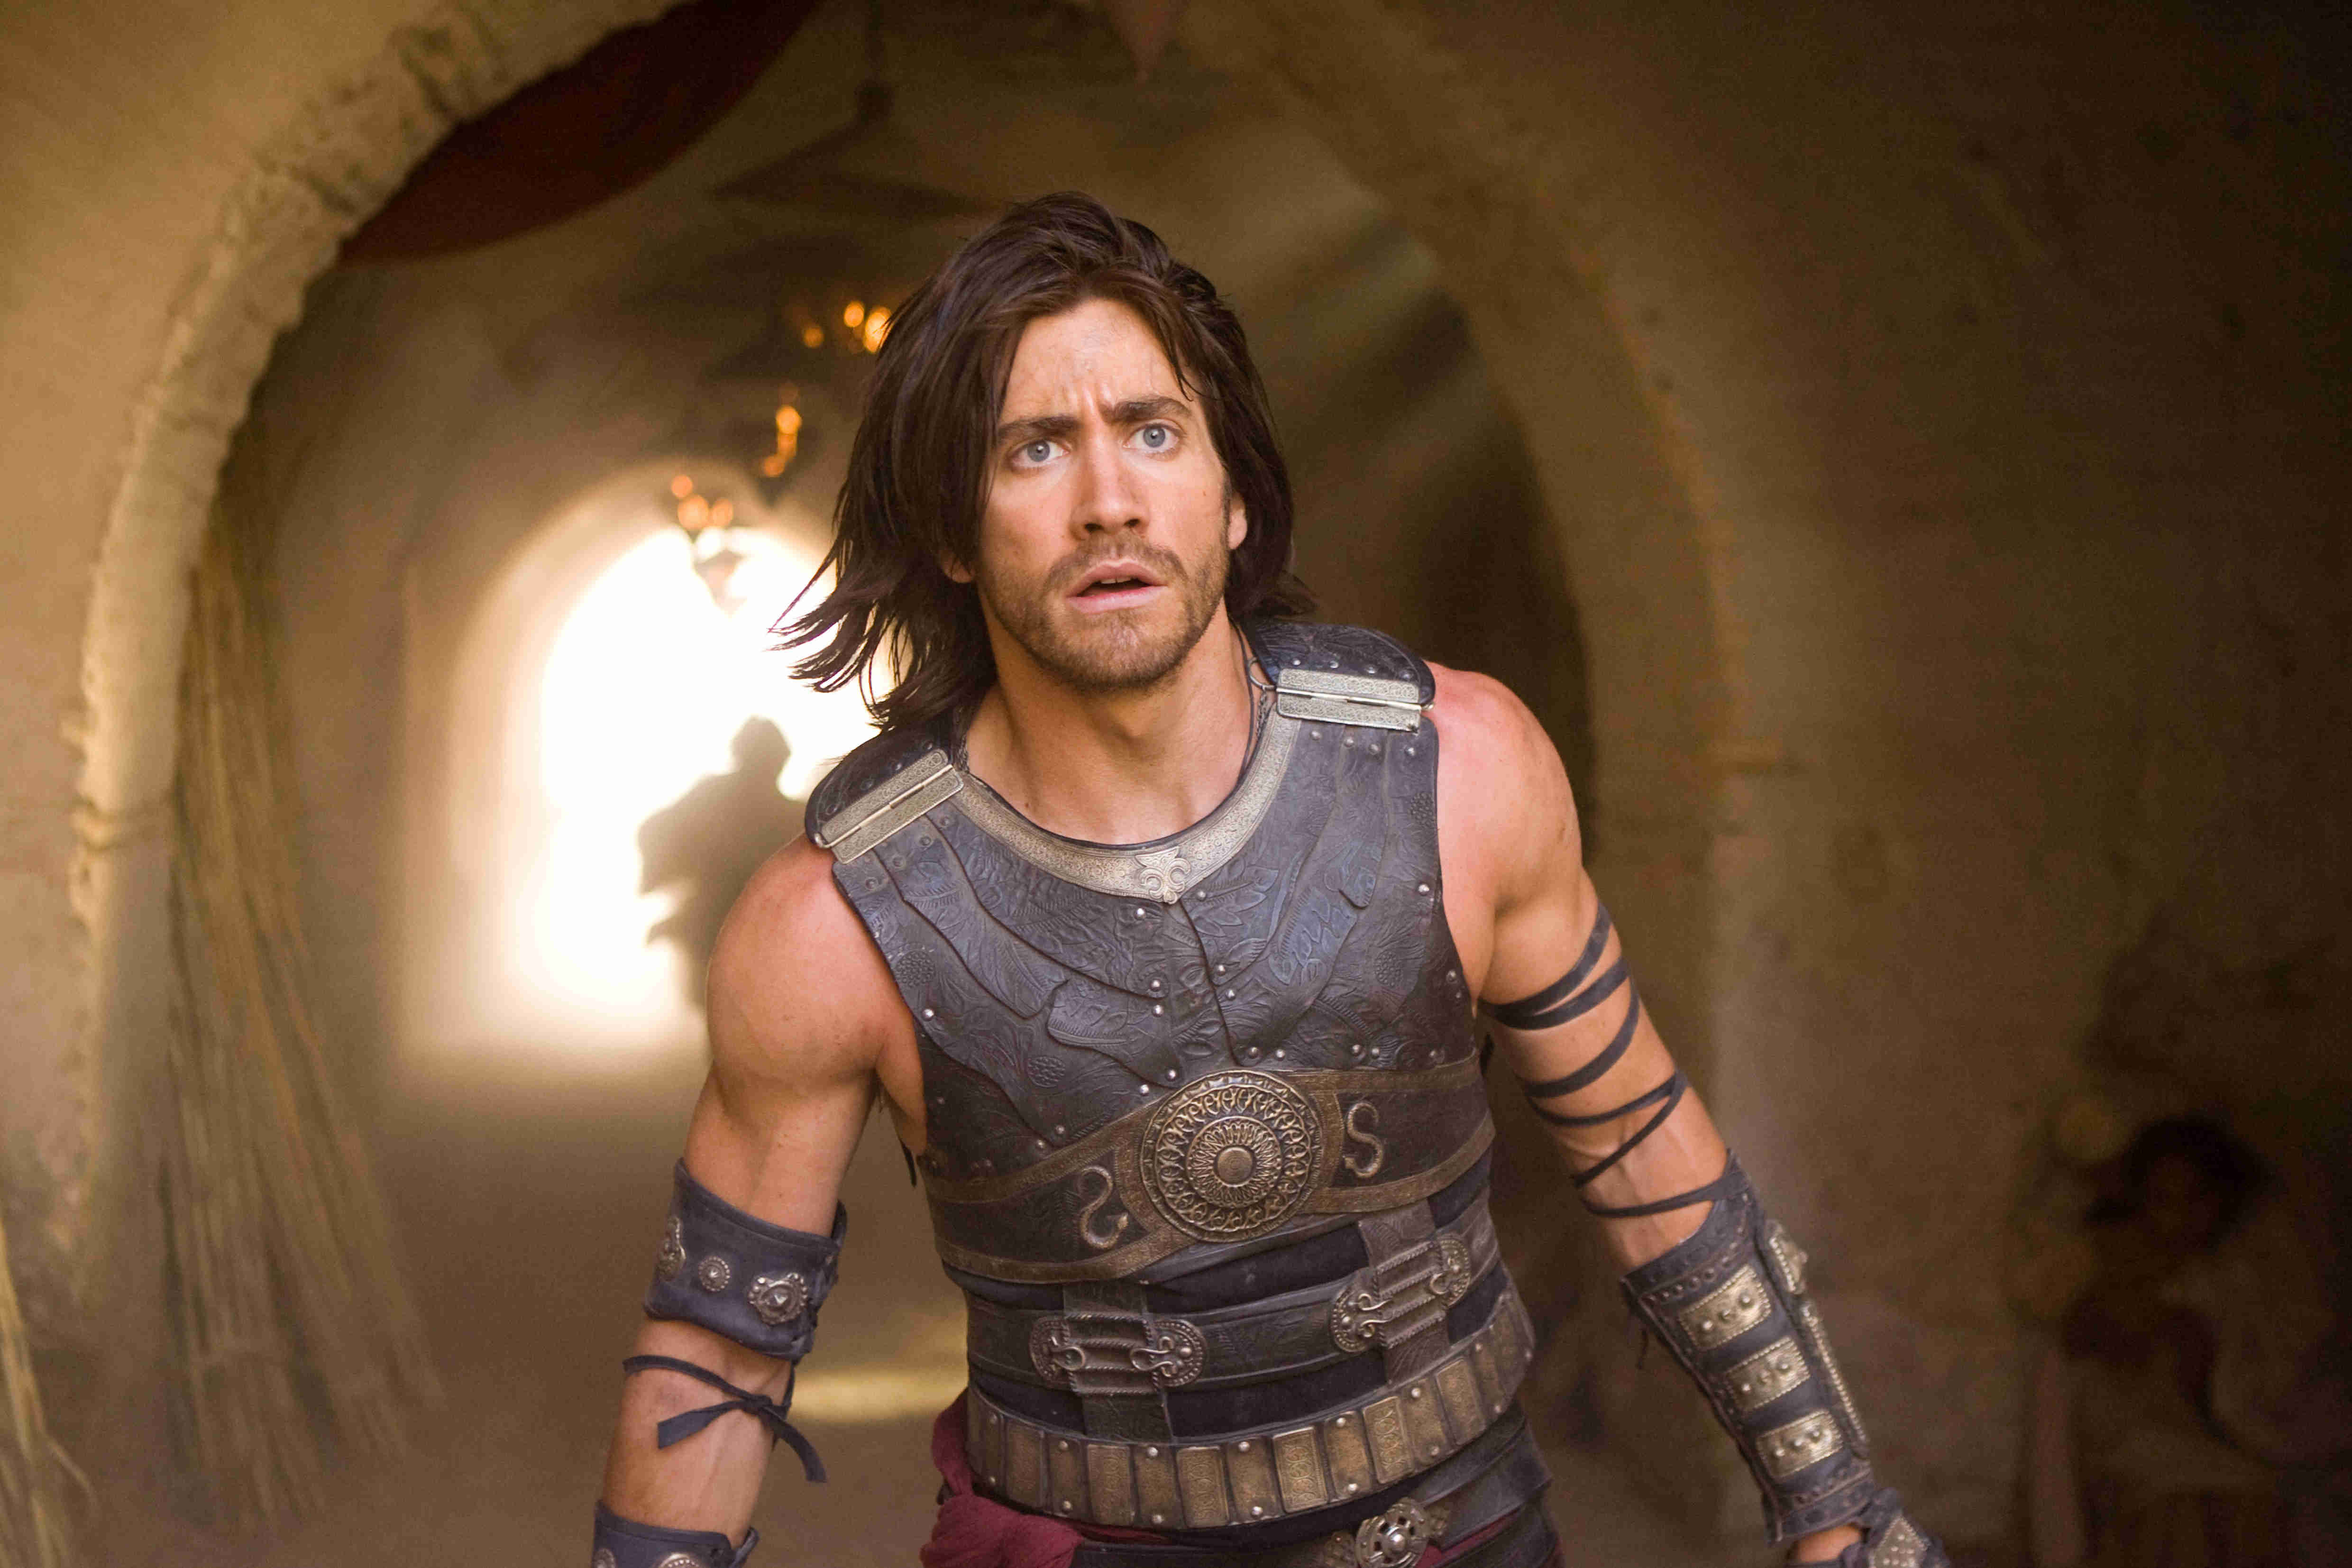 Jake Gyllenhaal as Dastan in Prince of Persia: The Sands of Time (2010)